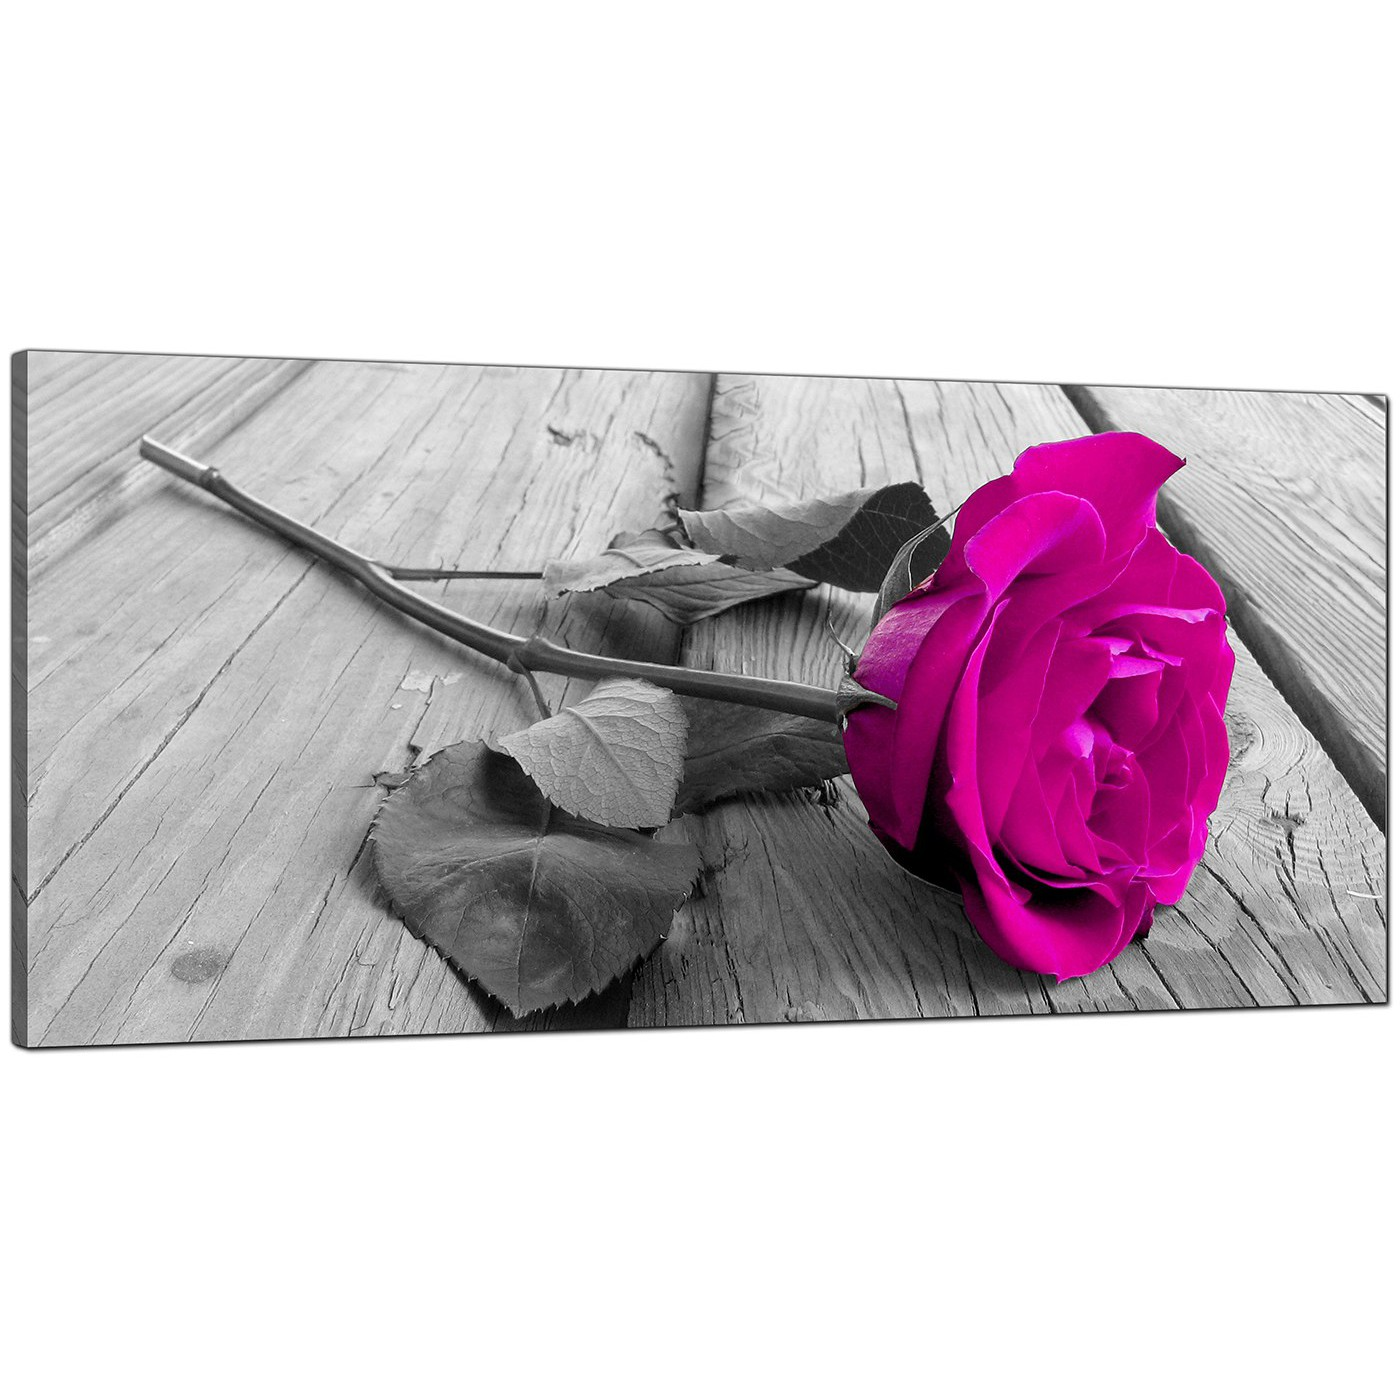 Modern Black And White Canvas Art Of A Pink Rose Flower